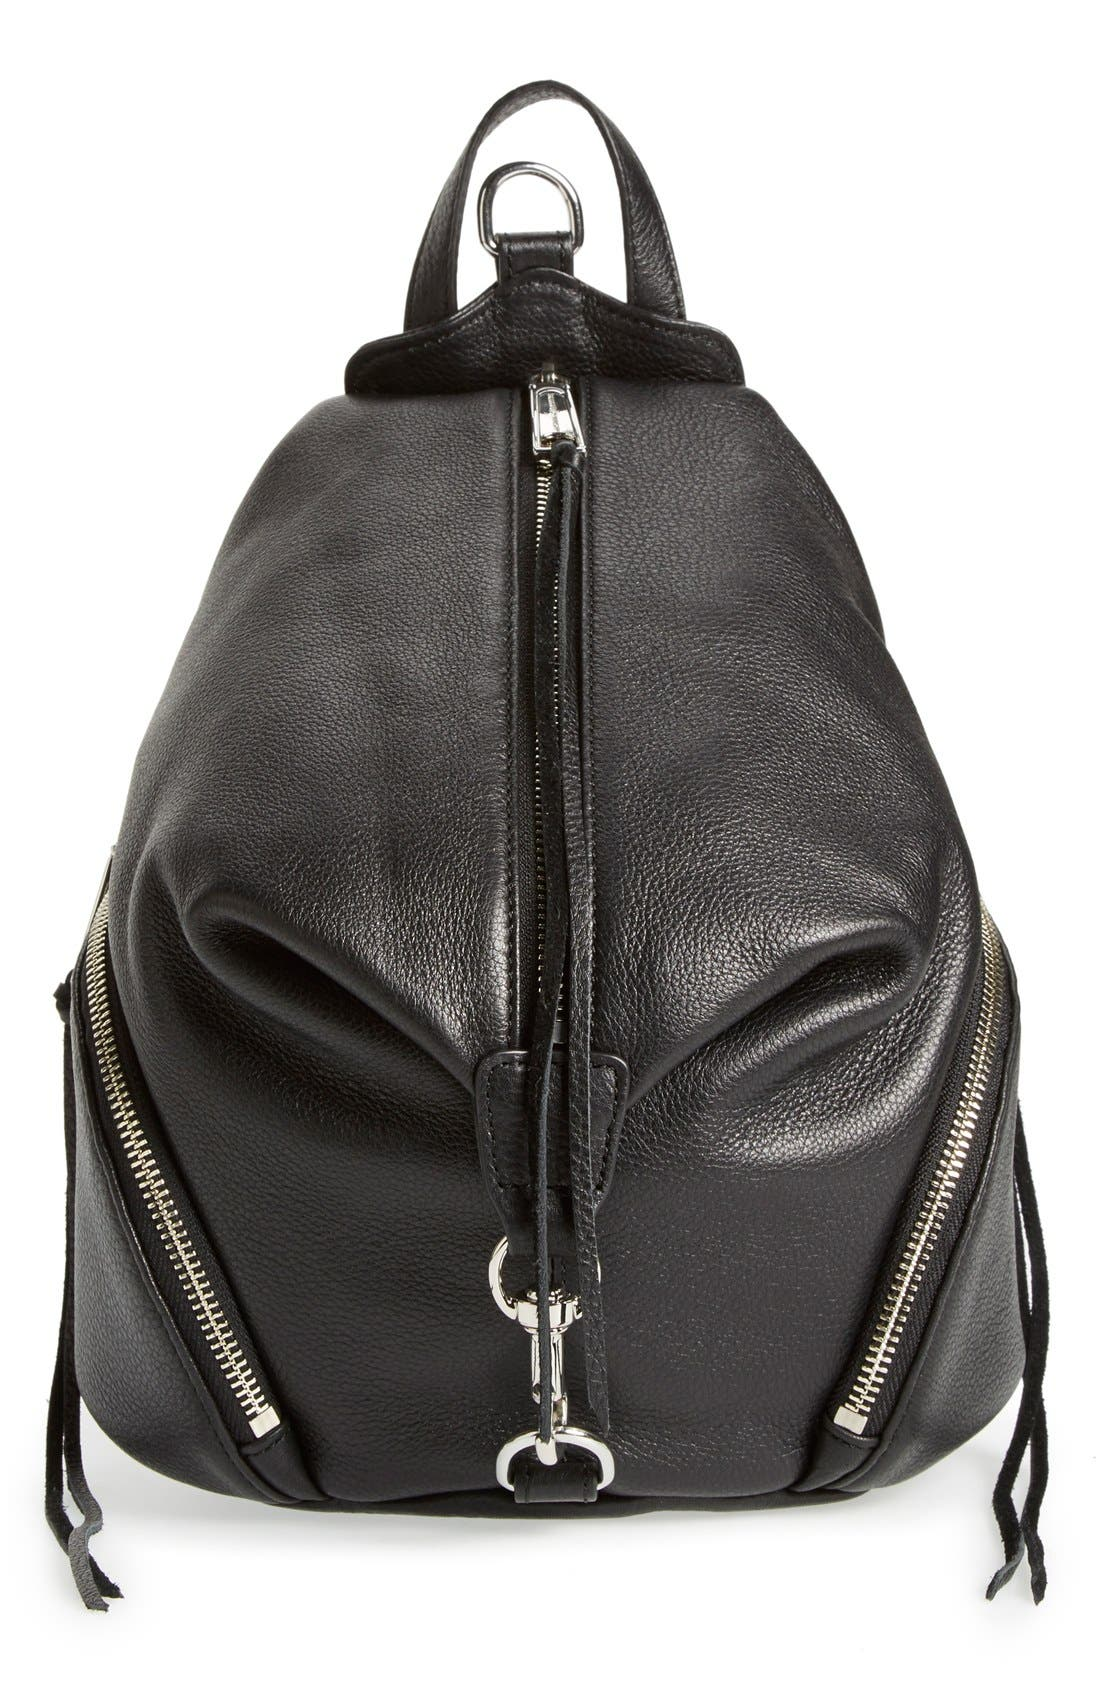 Medium Julian Backpack,                         Main,                         color, Black/ Silver Hrdwr